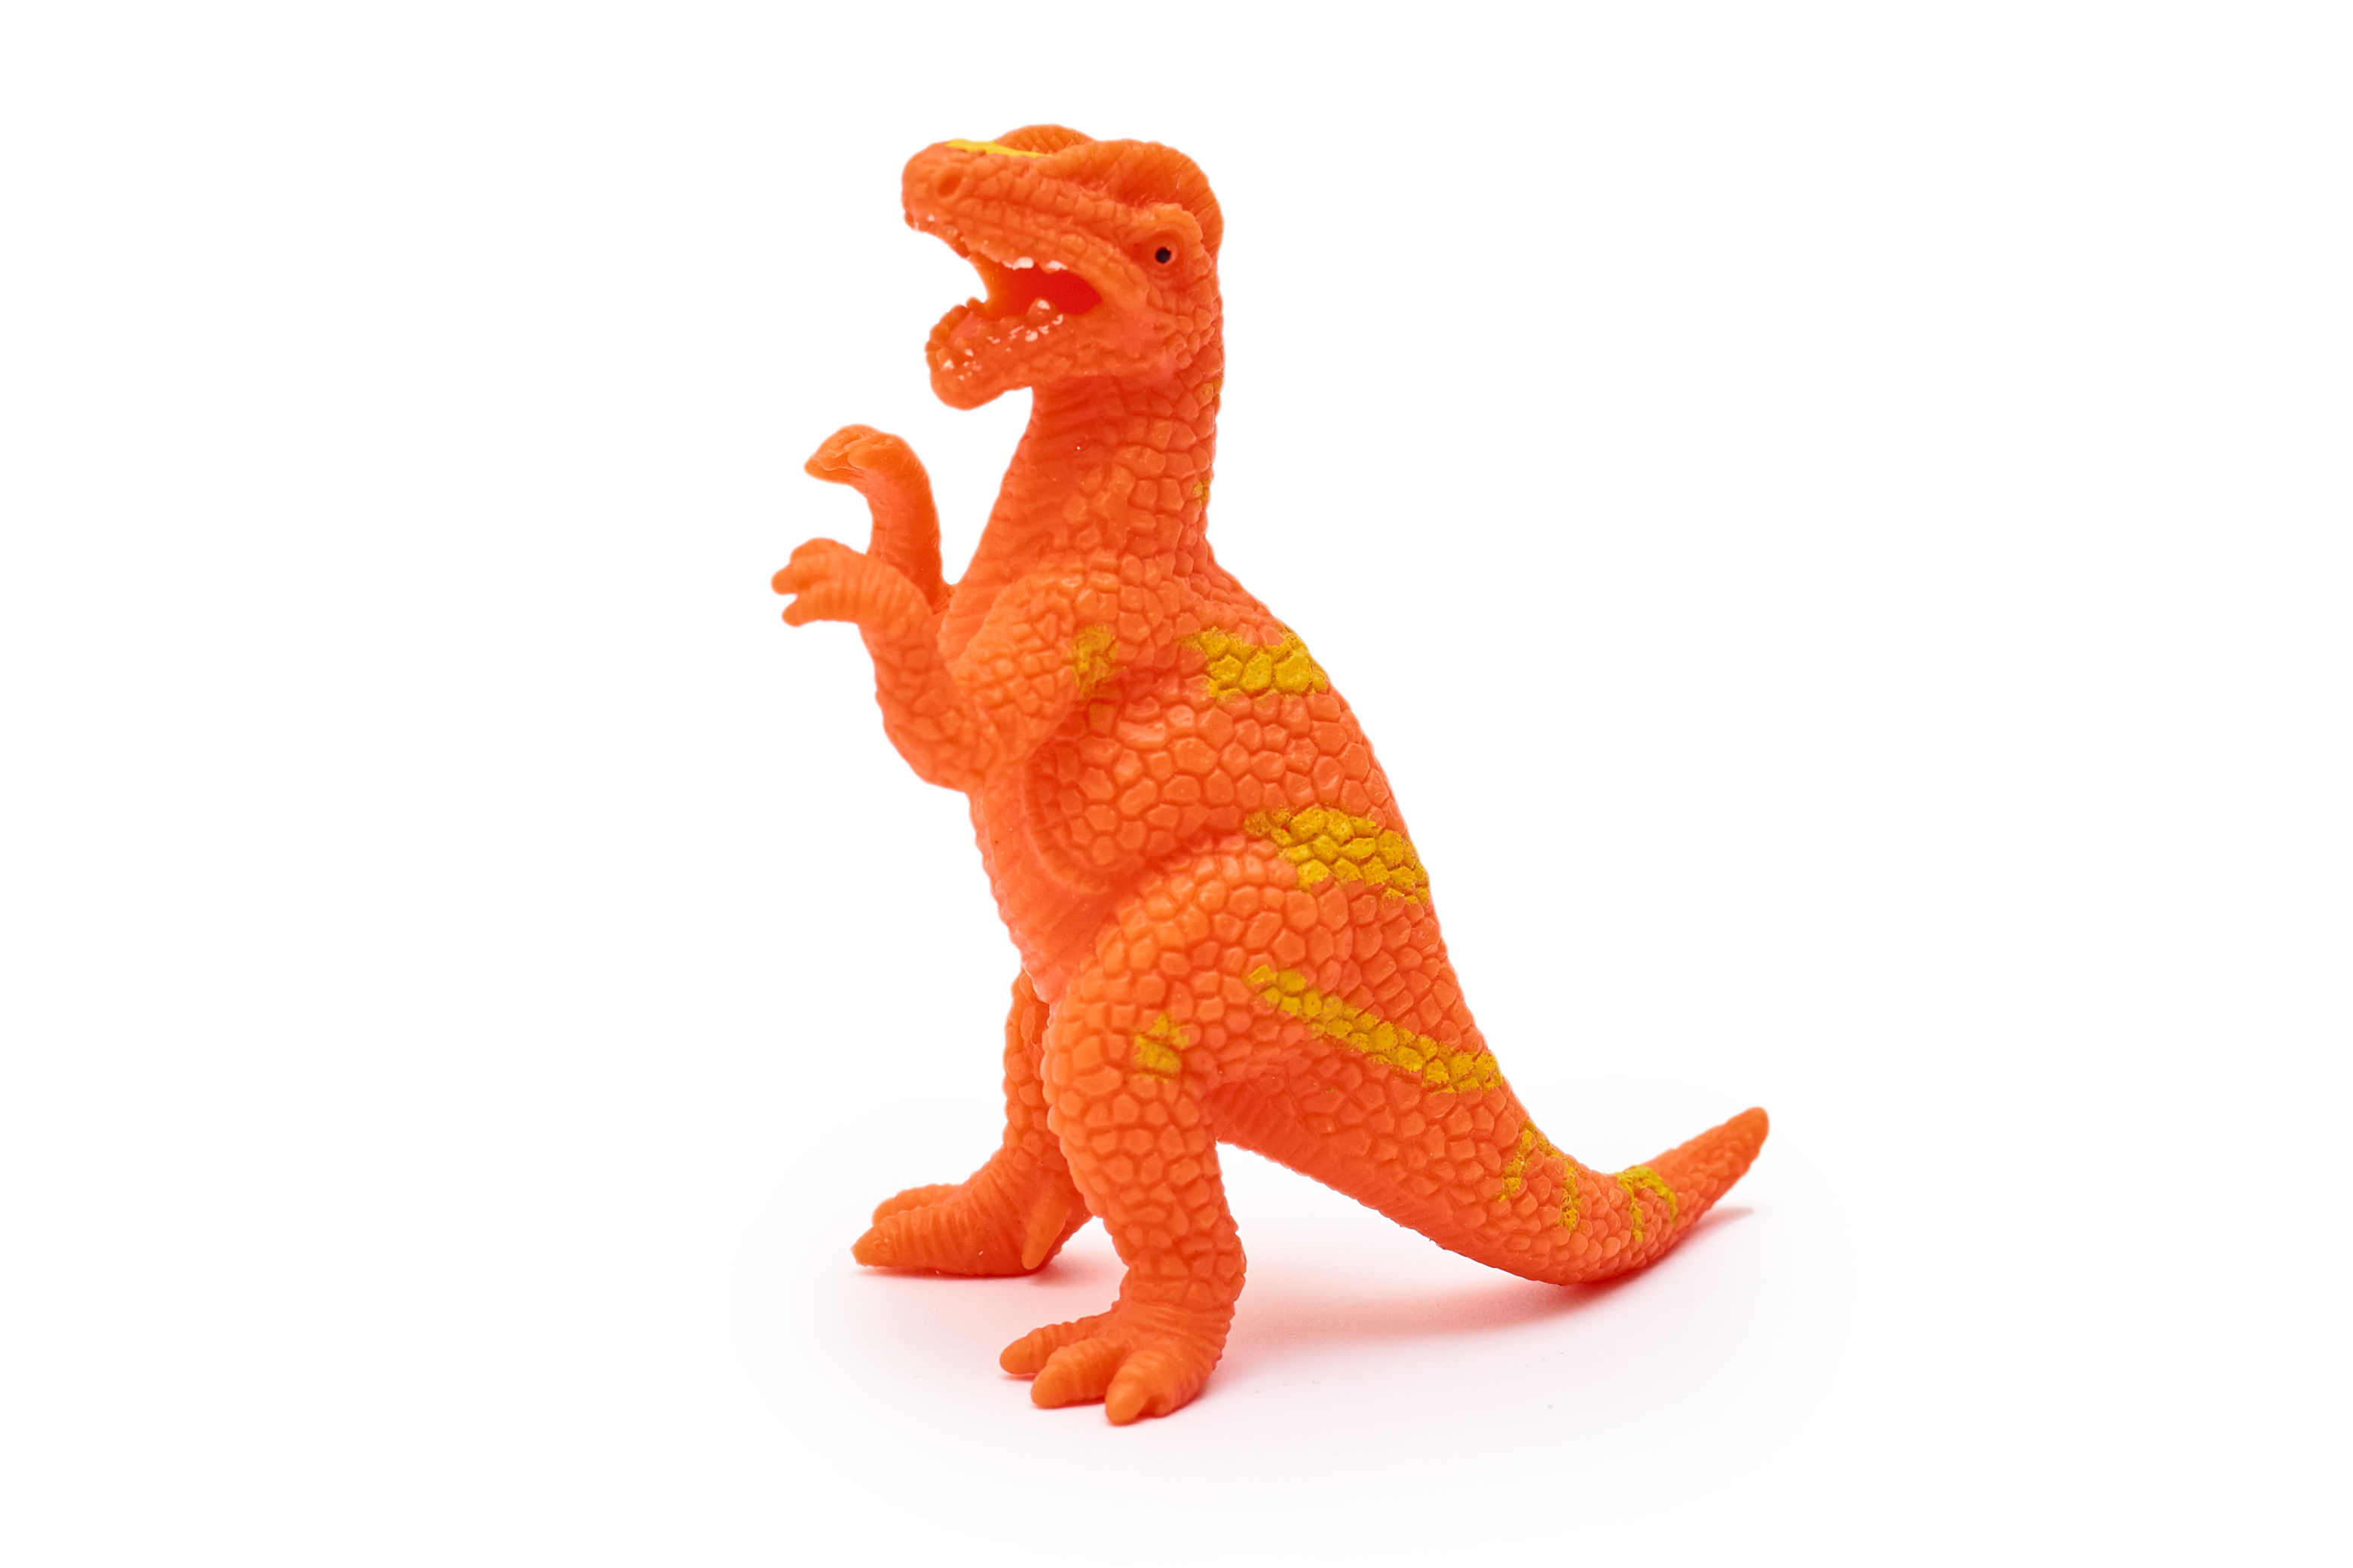 Orange Dinosaur Toy